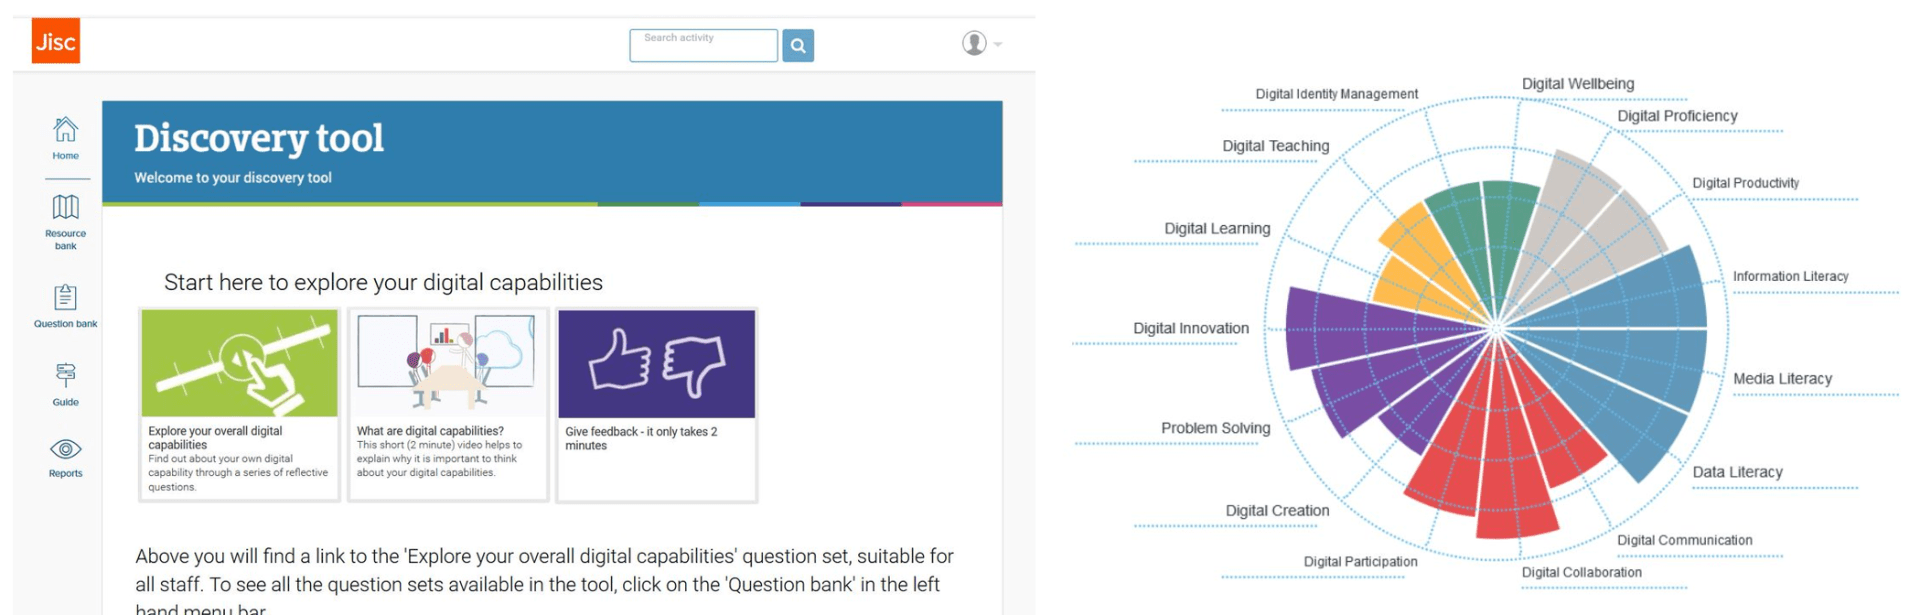 Screenshot of Jisc discovery tool and sample results